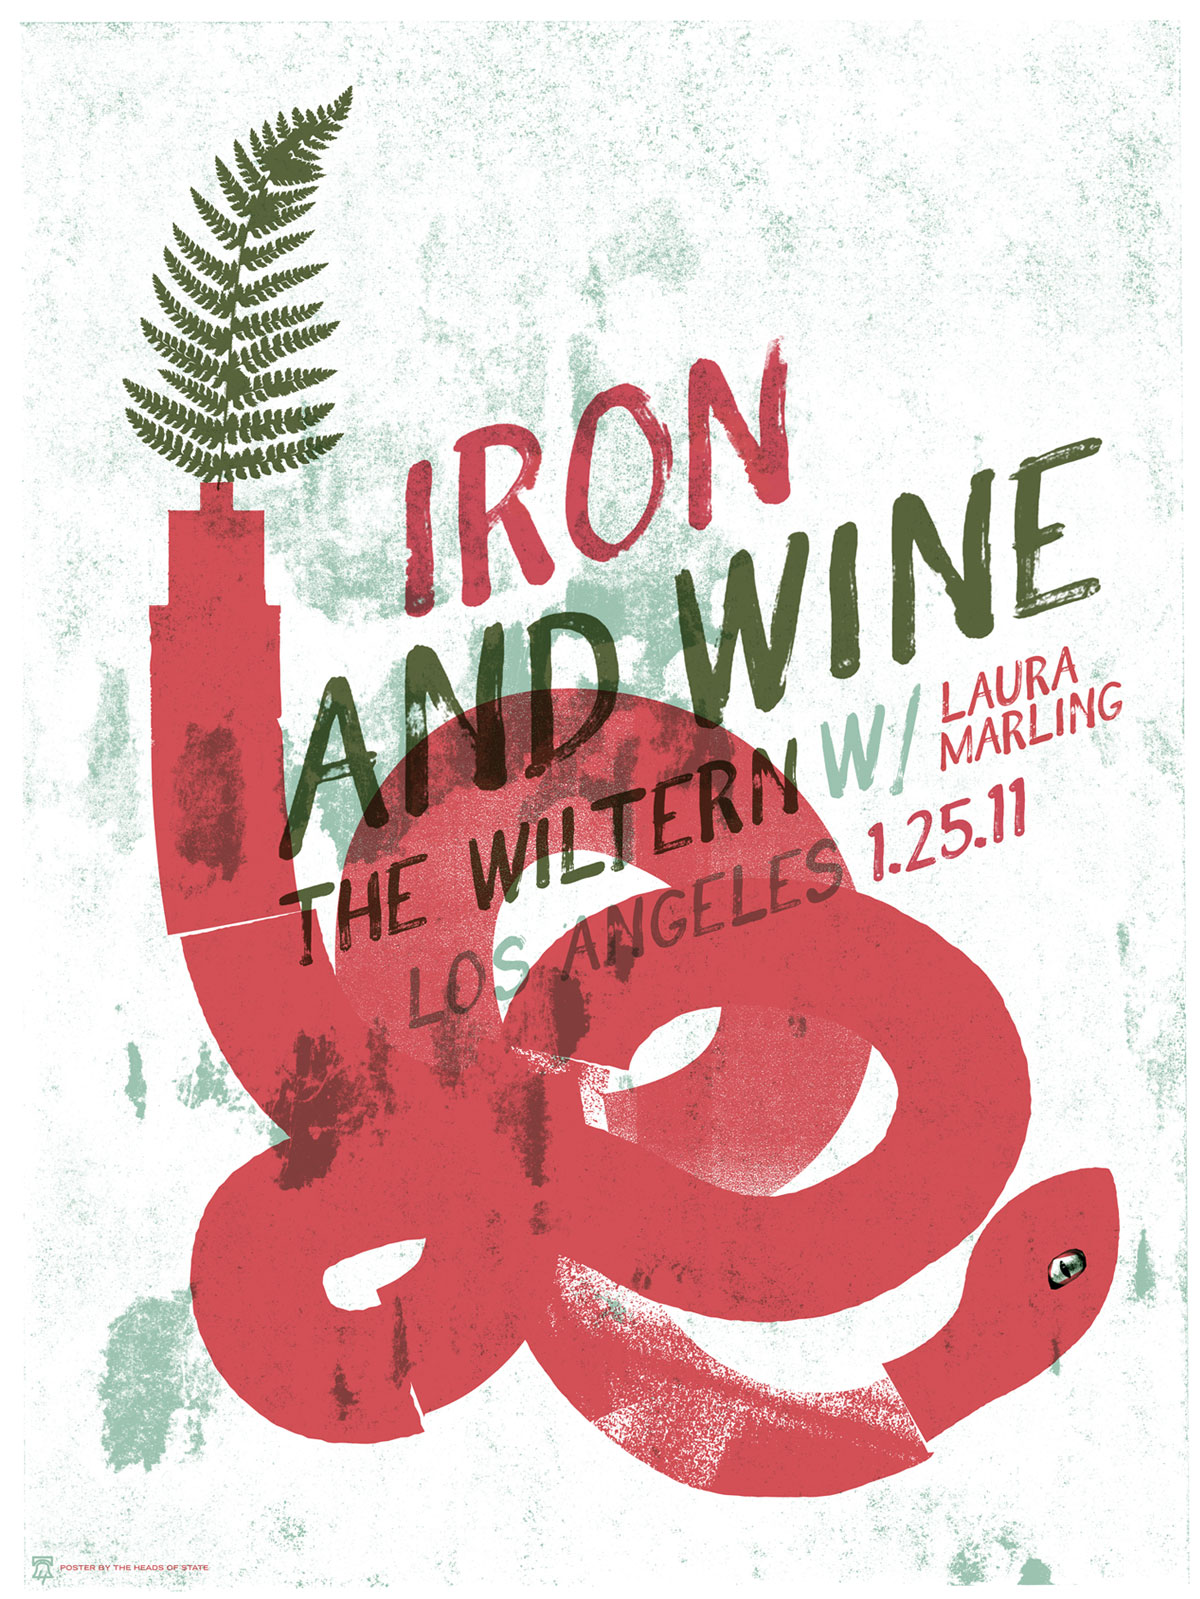 Iron And Wine Gig Poster - The Heads of State